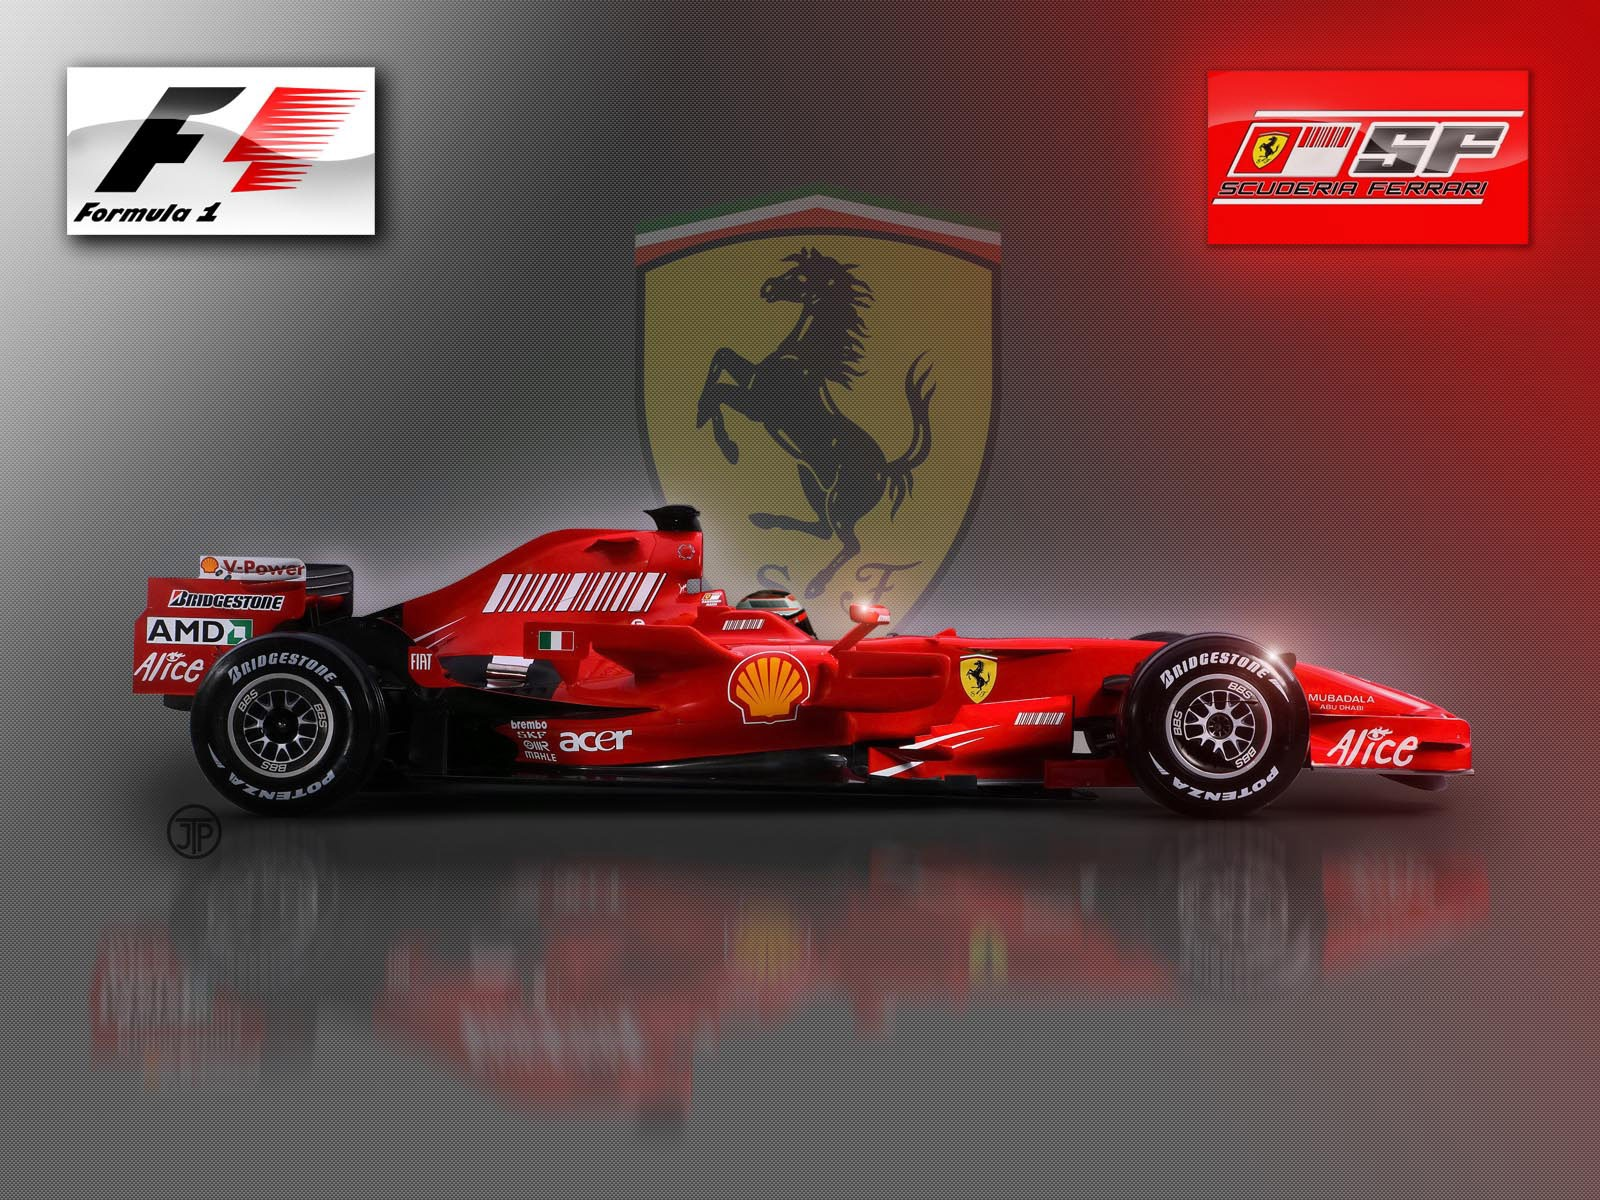 ferrari f1 wallpaper background